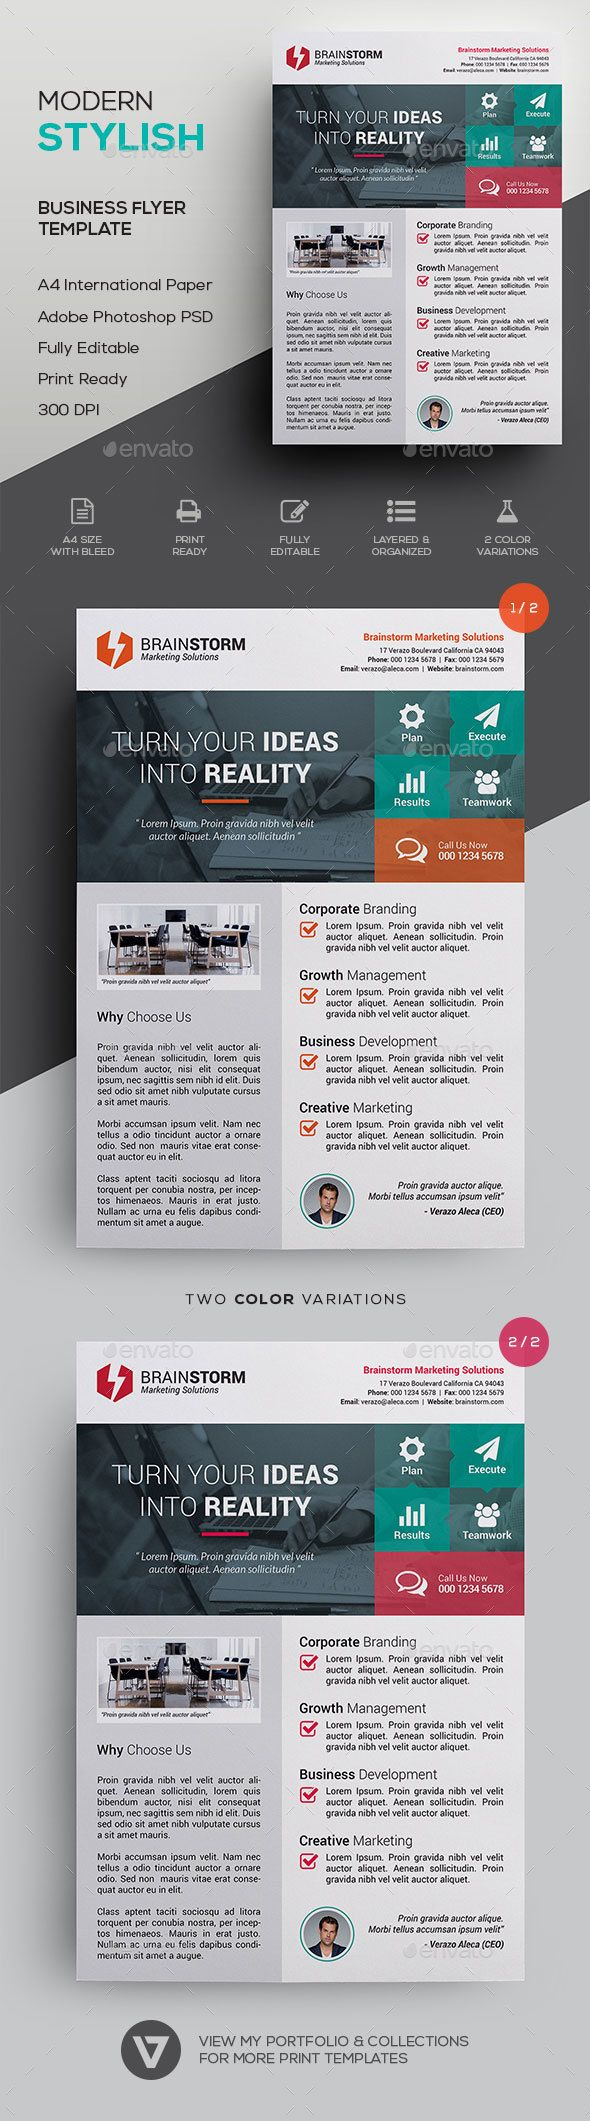 best ideas about business flyer templates business flyer template